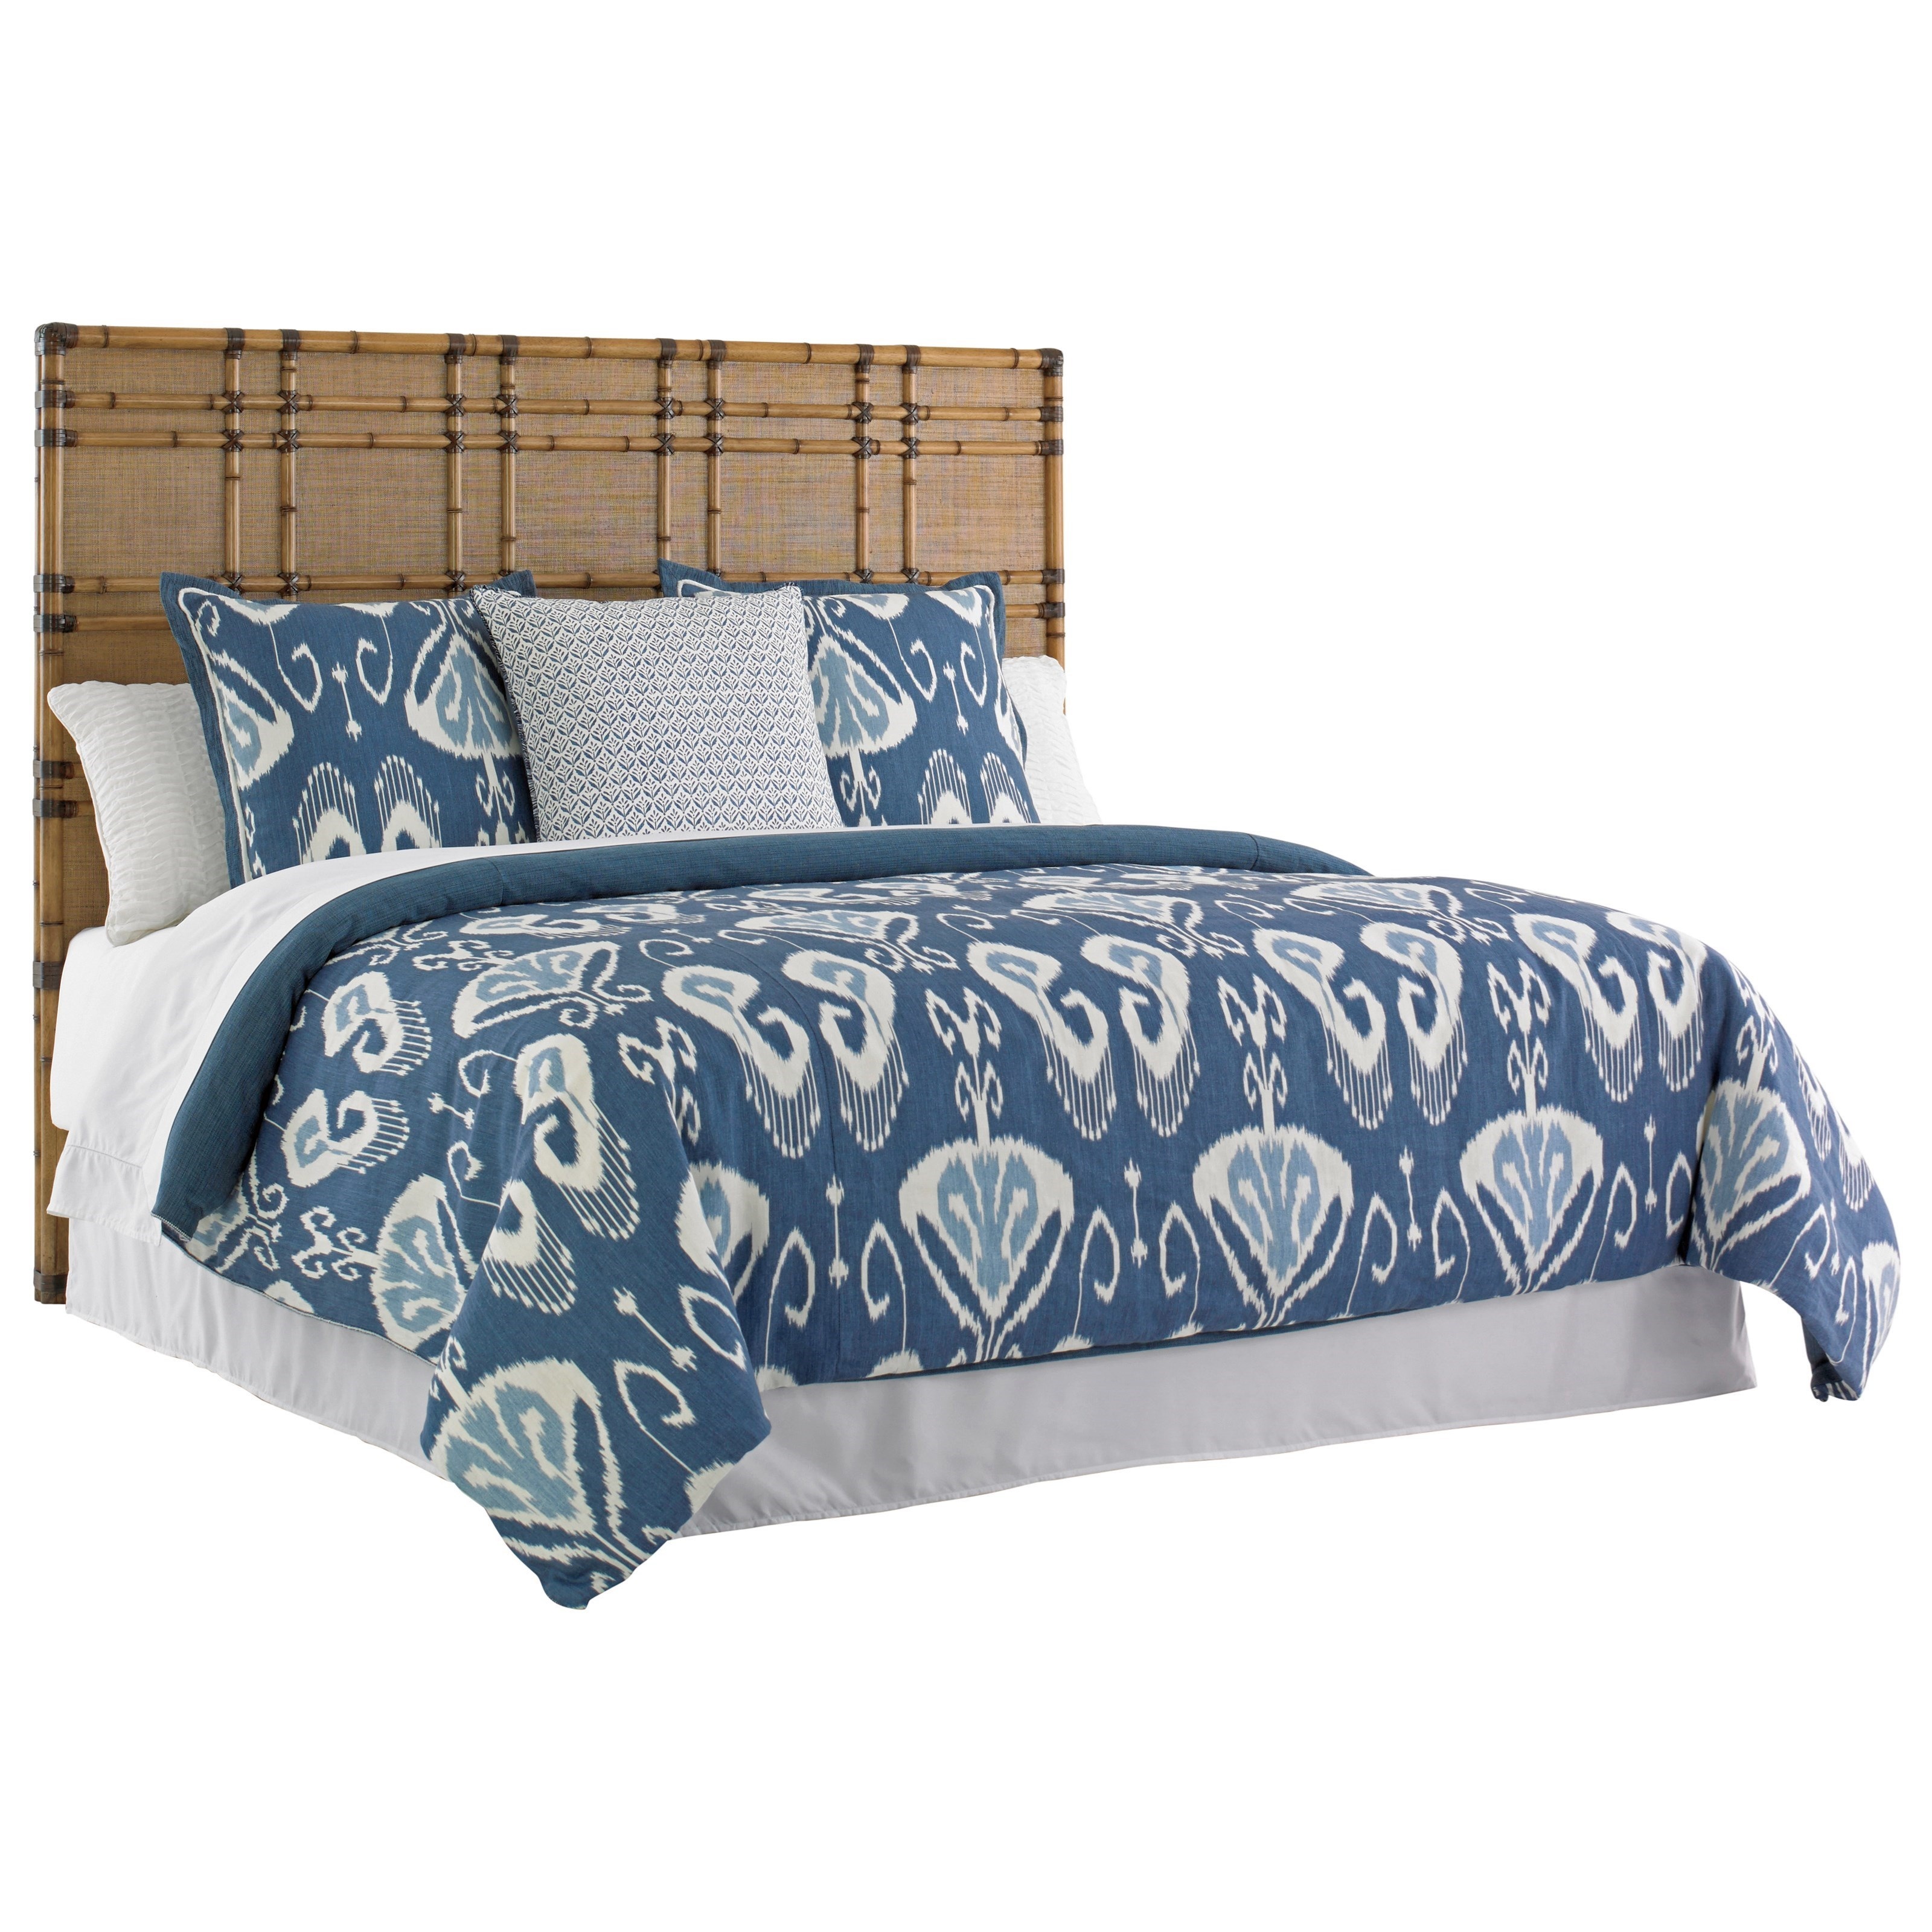 Tommy Bahama Home Twin Palms King Size Coco Bay Headboard - Item Number: 558-134HB